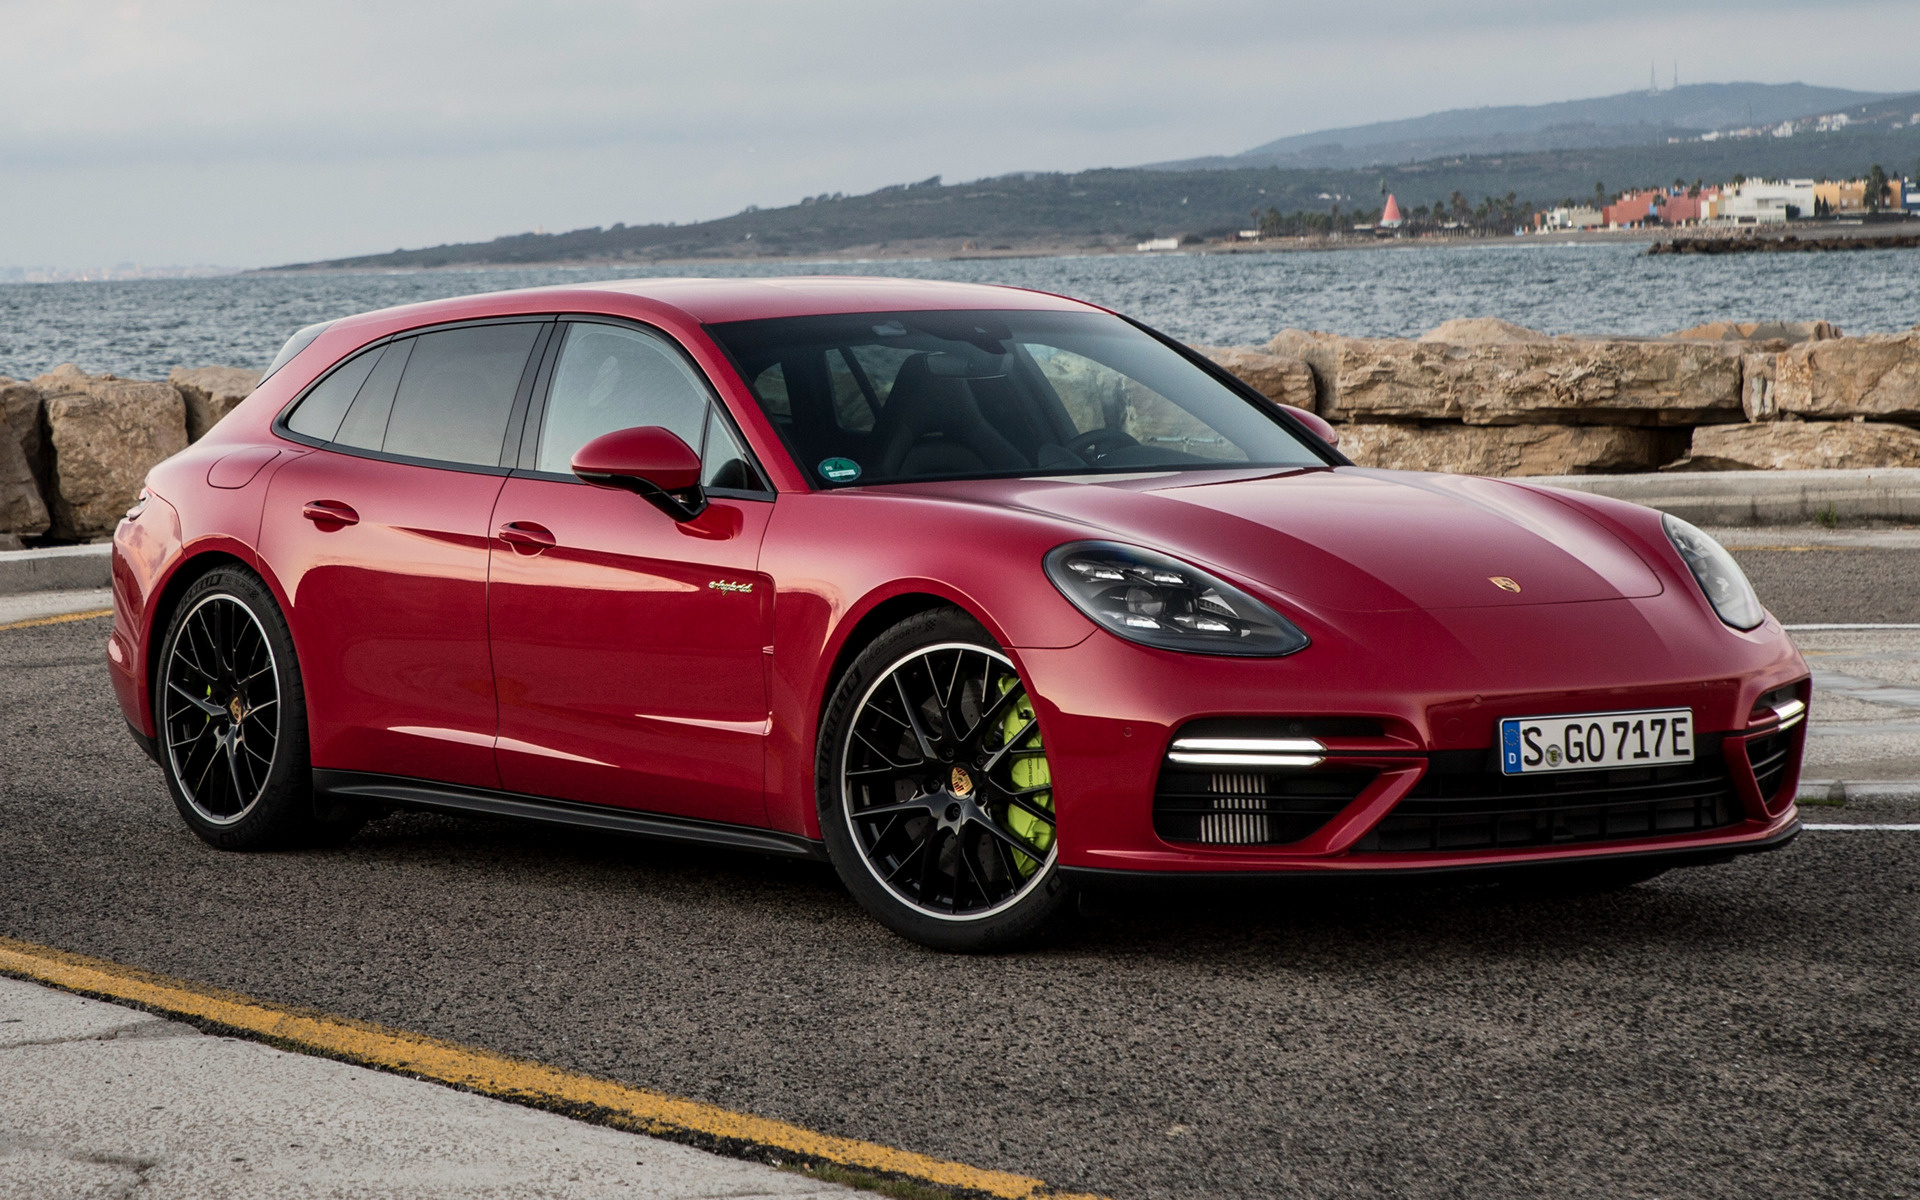 2017 Porsche Panamera Turbo S E Hybrid Sport Turismo Wallpapers And Hd Images Car Pixel